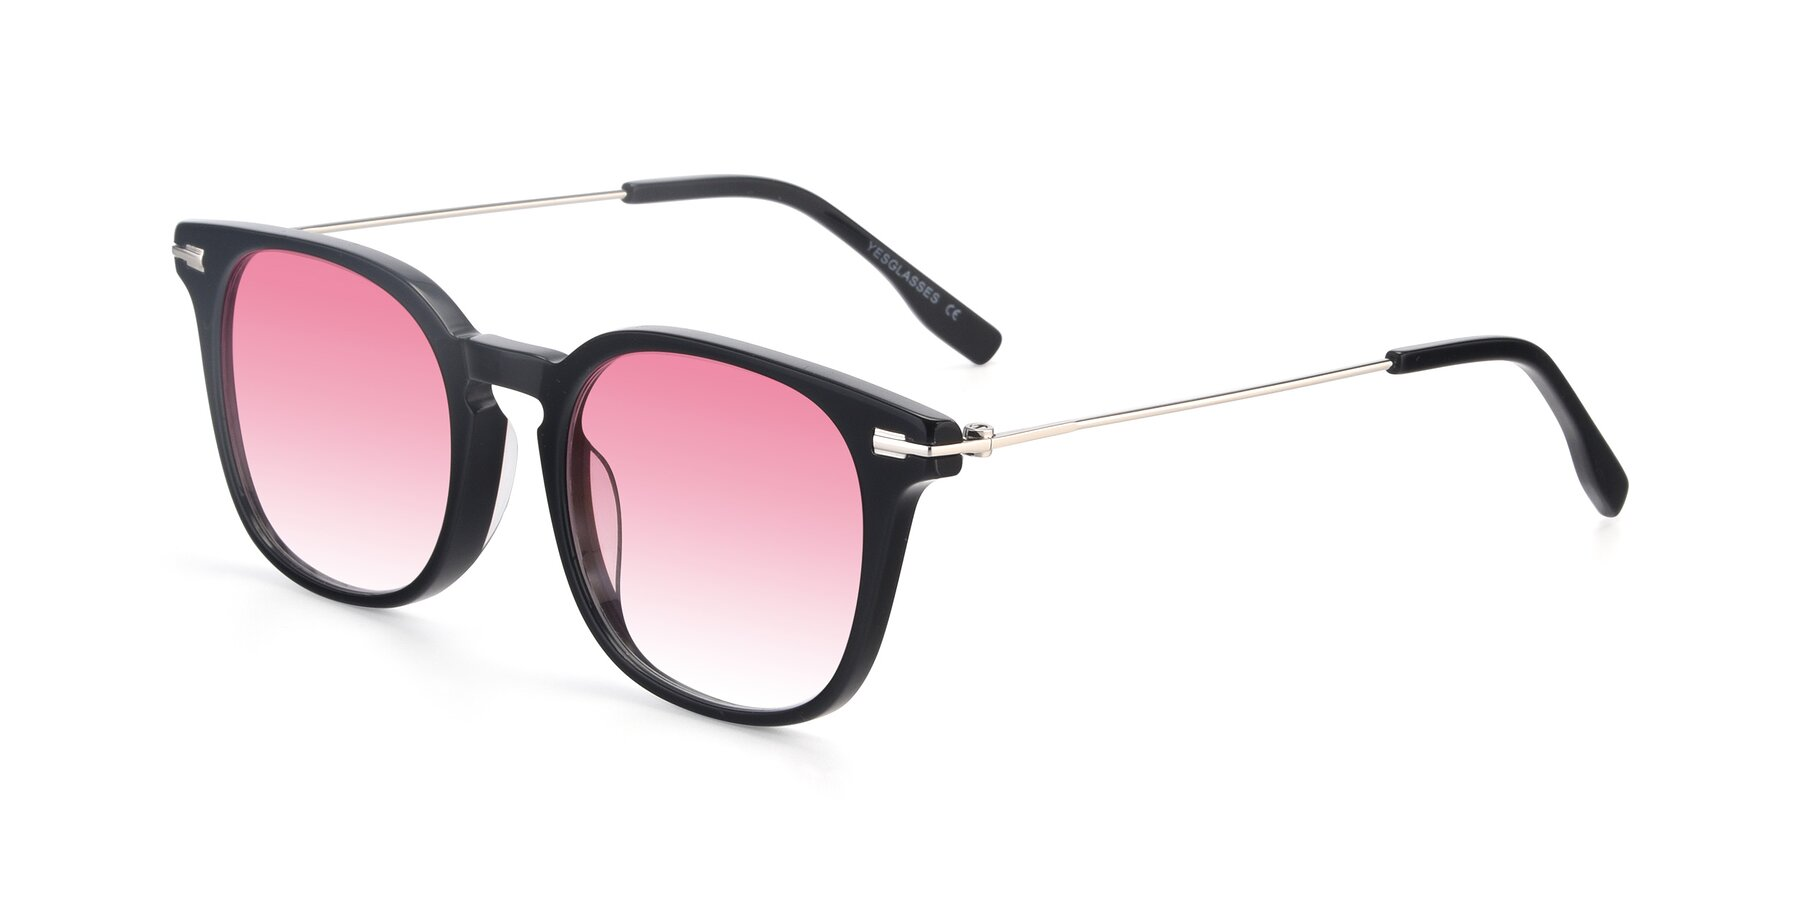 Angle of 17711 in Black with Pink Gradient Lenses